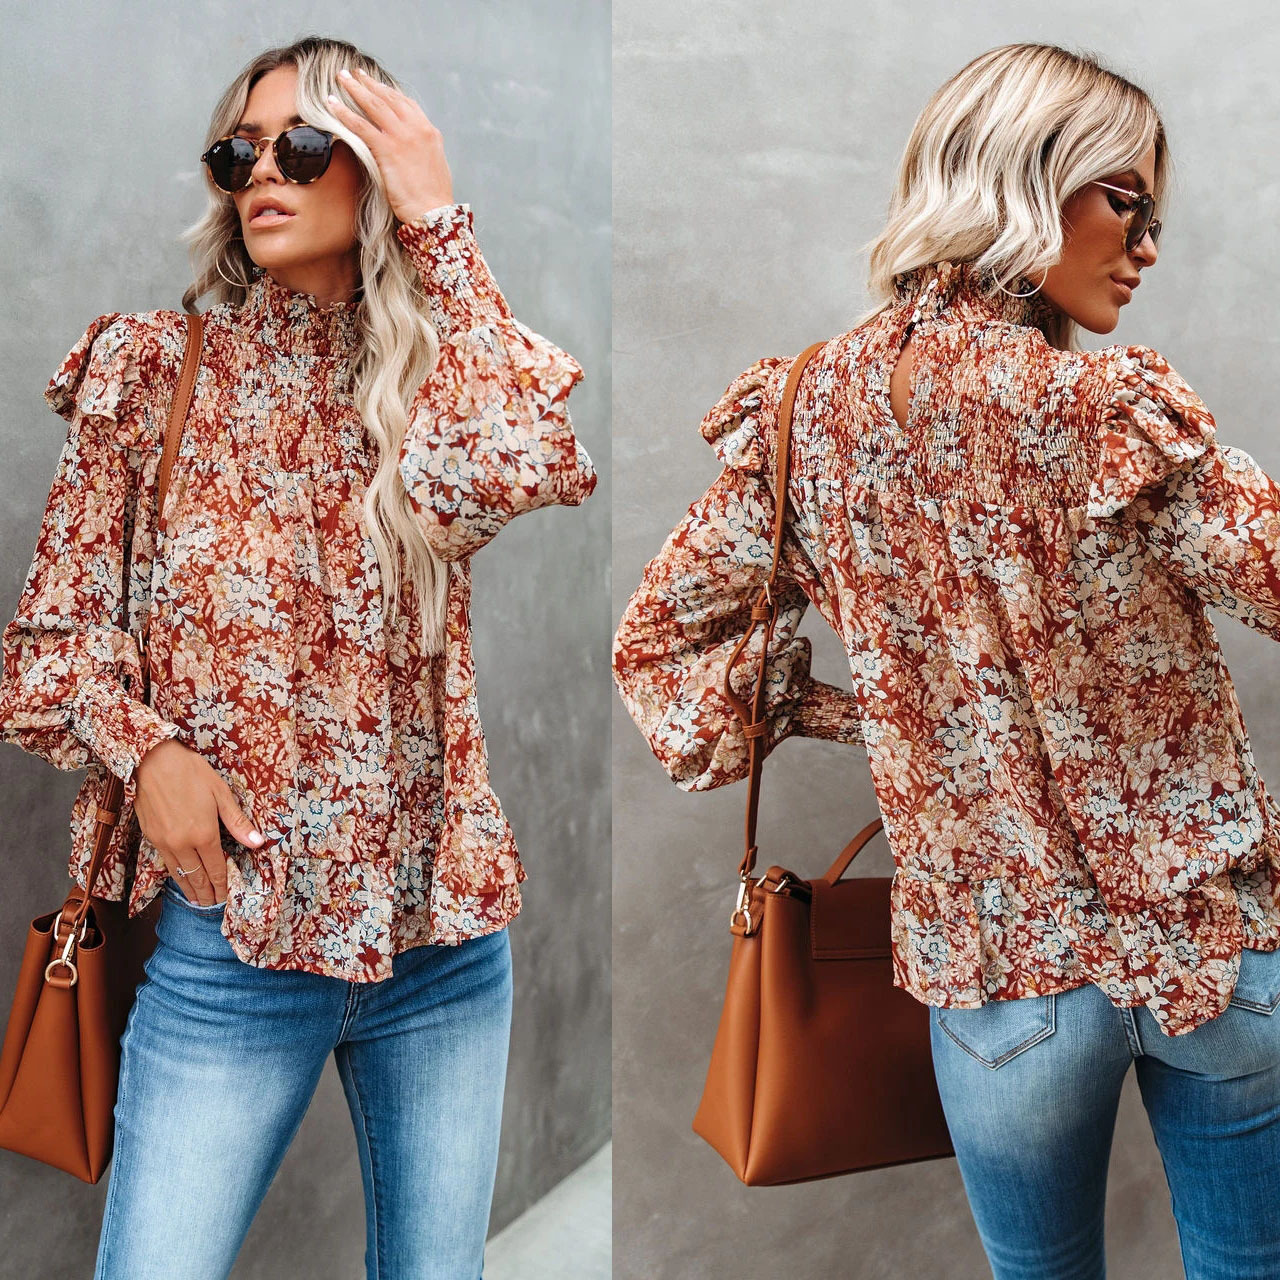 Loose Floral Puff-Sleeve High Neck Back-Cut Long Sleeves Blouse for Spring Time Styles